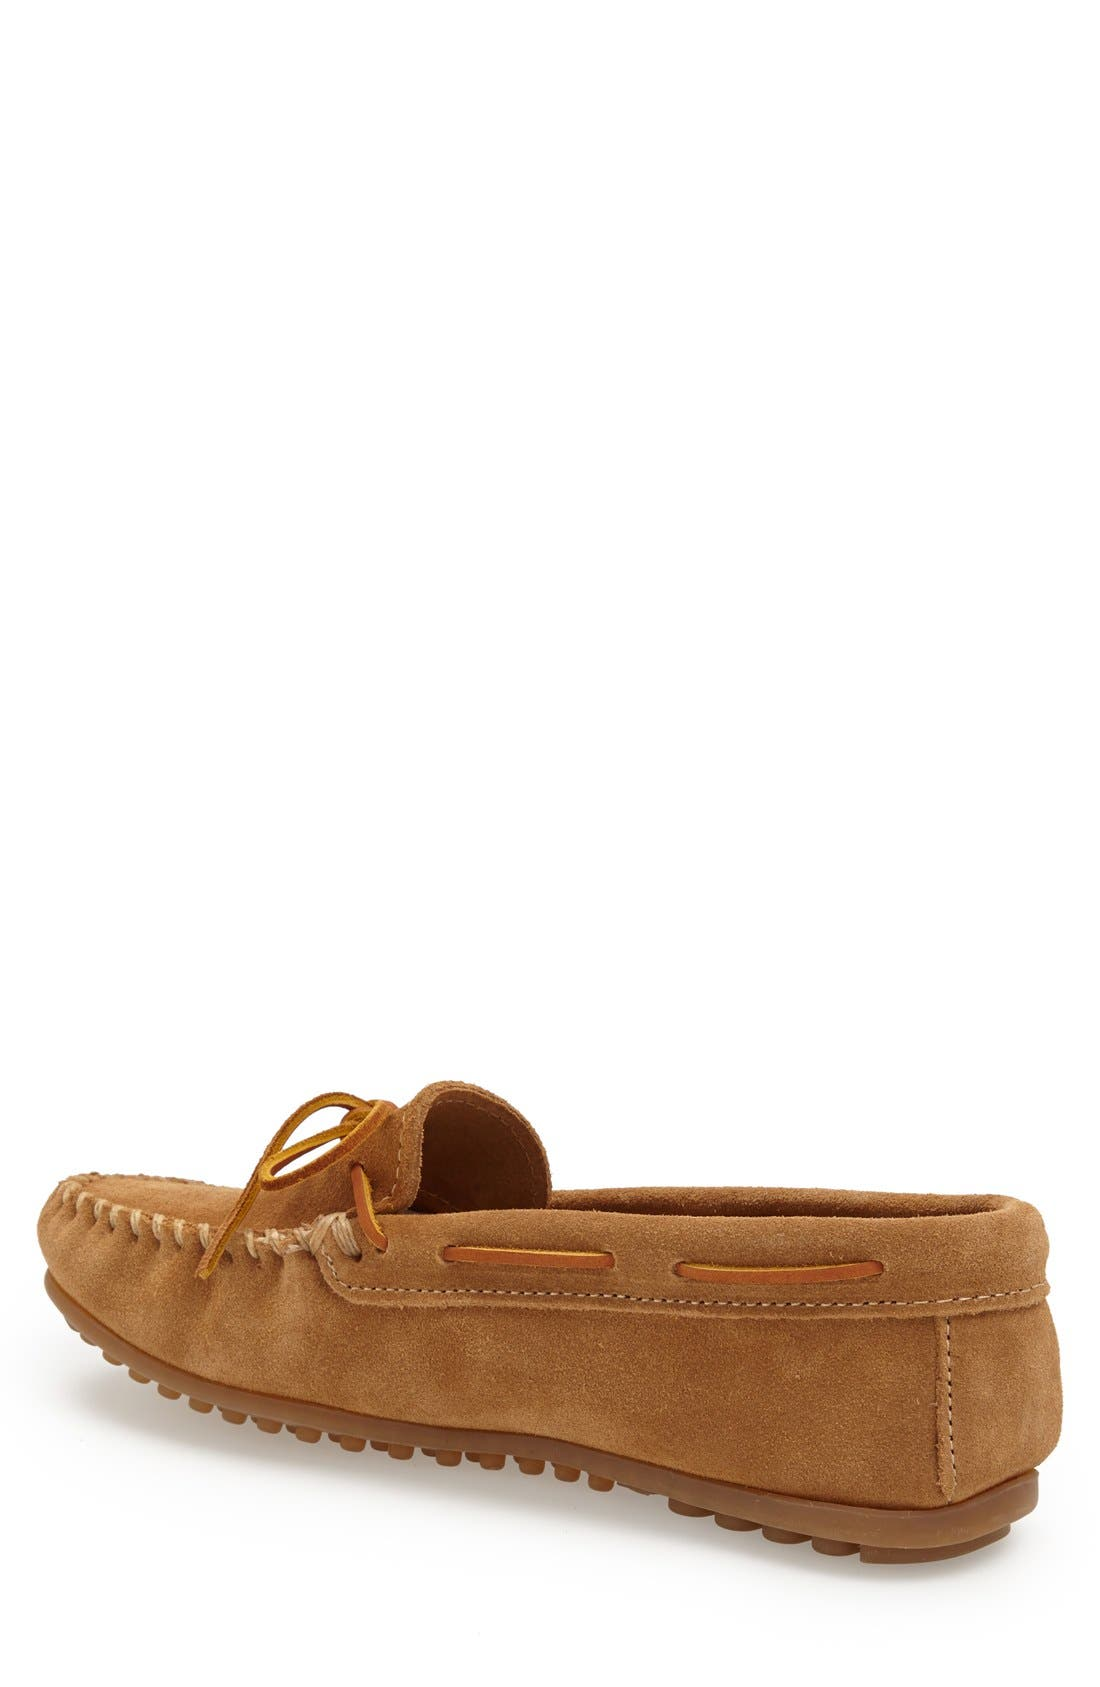 Alternate Image 2  - Minnetonka Suede Driving Shoe